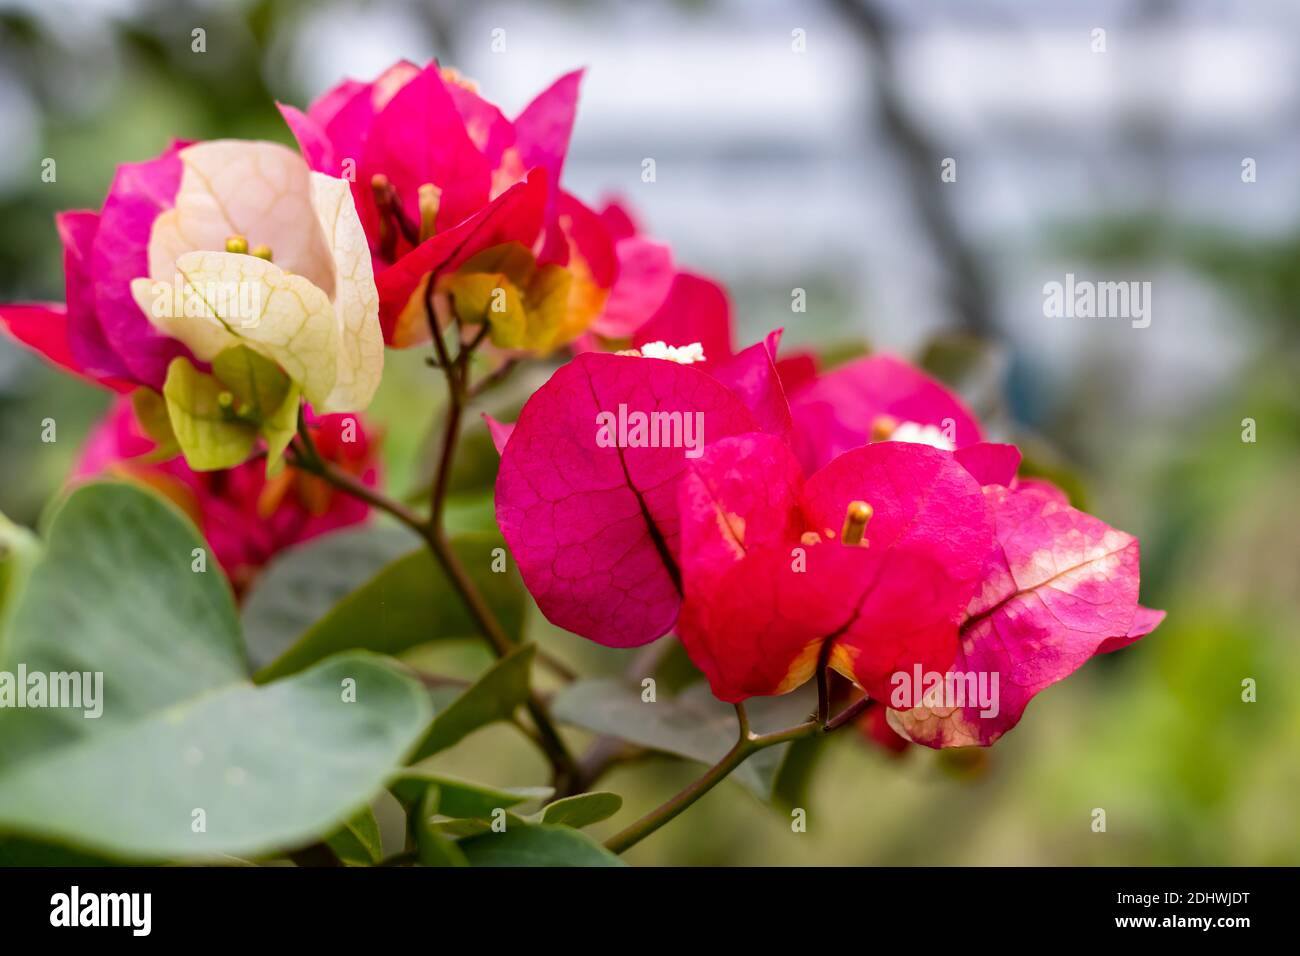 Colorful Bougainvillea branch with flower and leaves in the garden Stock Photo